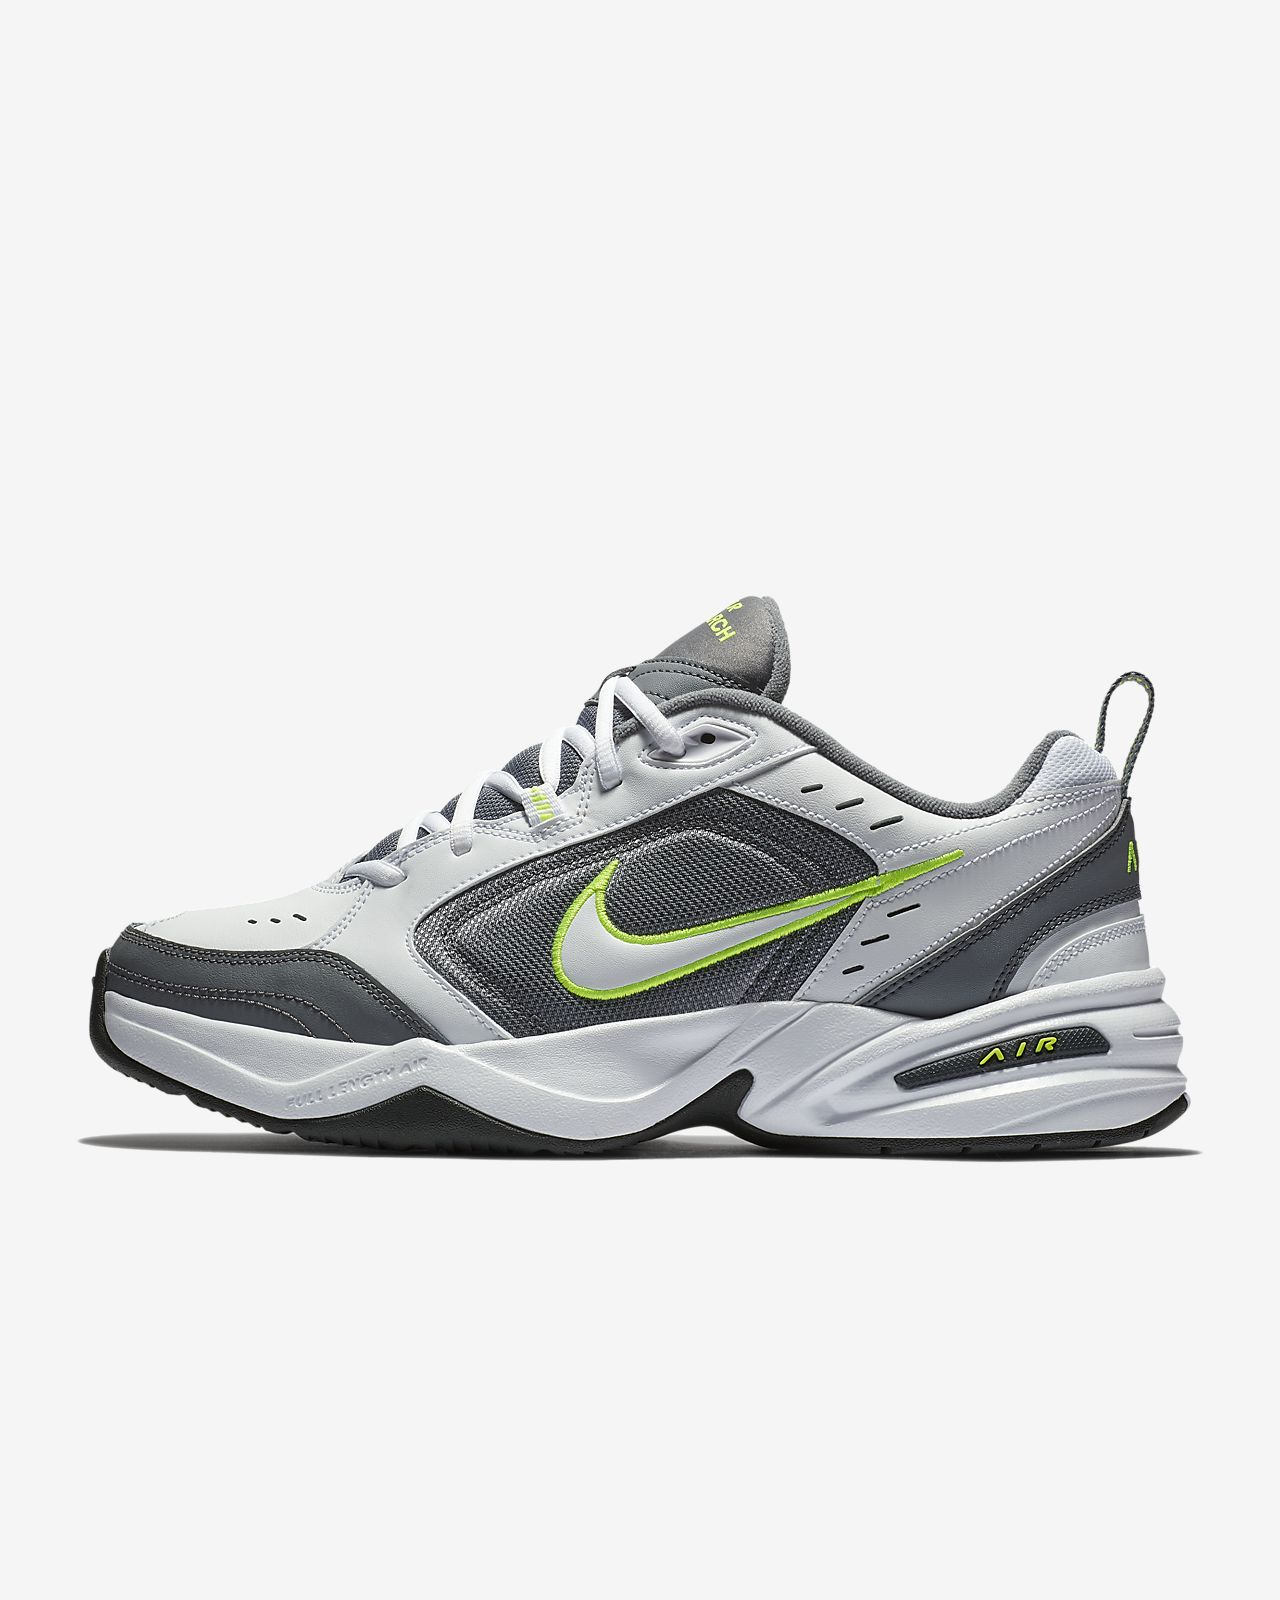 free shipping 16c6d 37974 ... Nike Air Monarch IV Lifestyle Gym Shoe